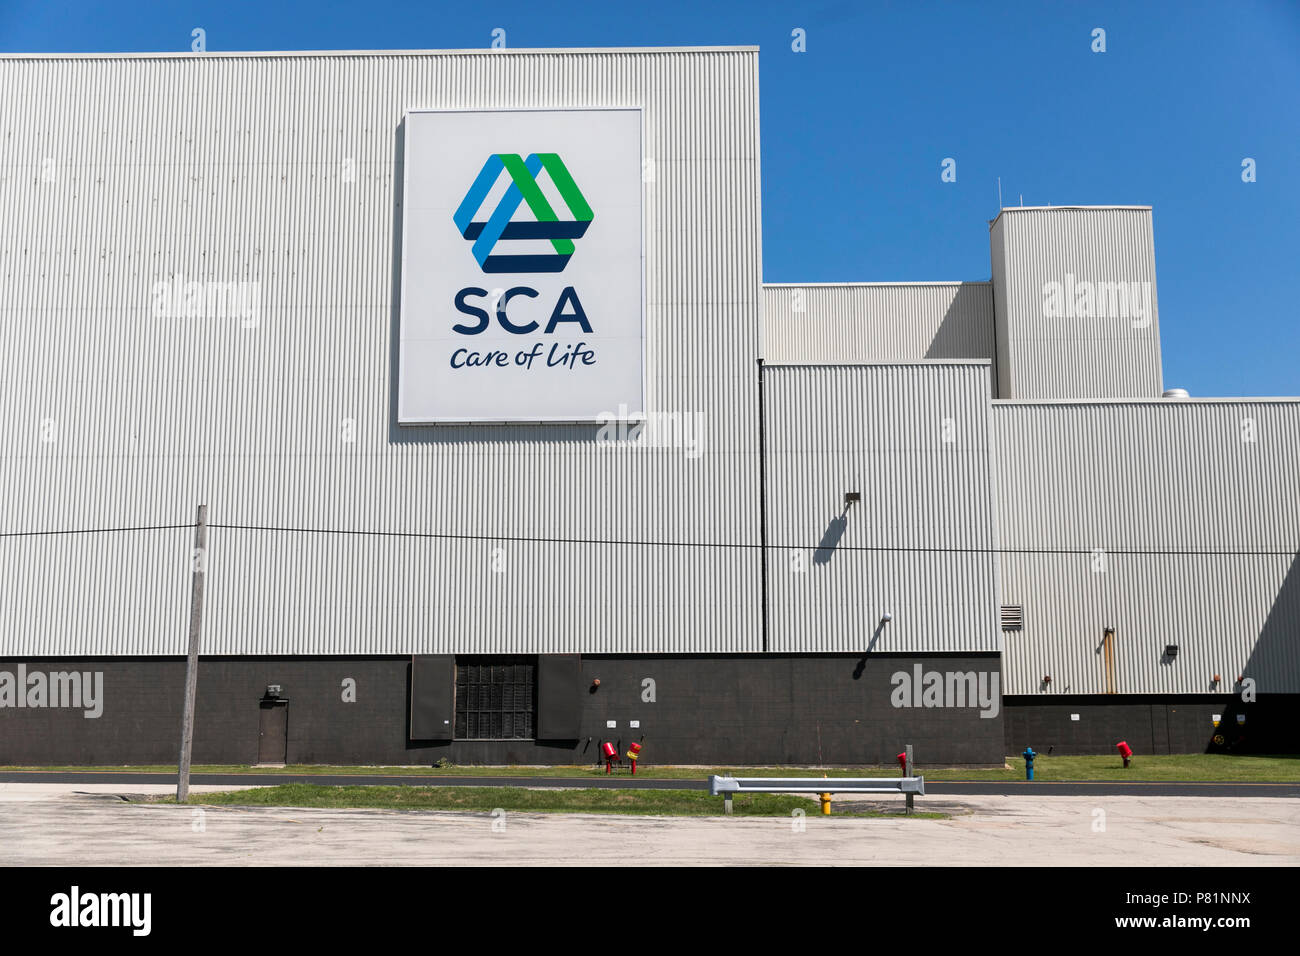 A logo sign outside of a facility occupied by SCA (Svenska Cellulosa) in Neenah, Wisconsin, on June 24, 2018. - Stock Image